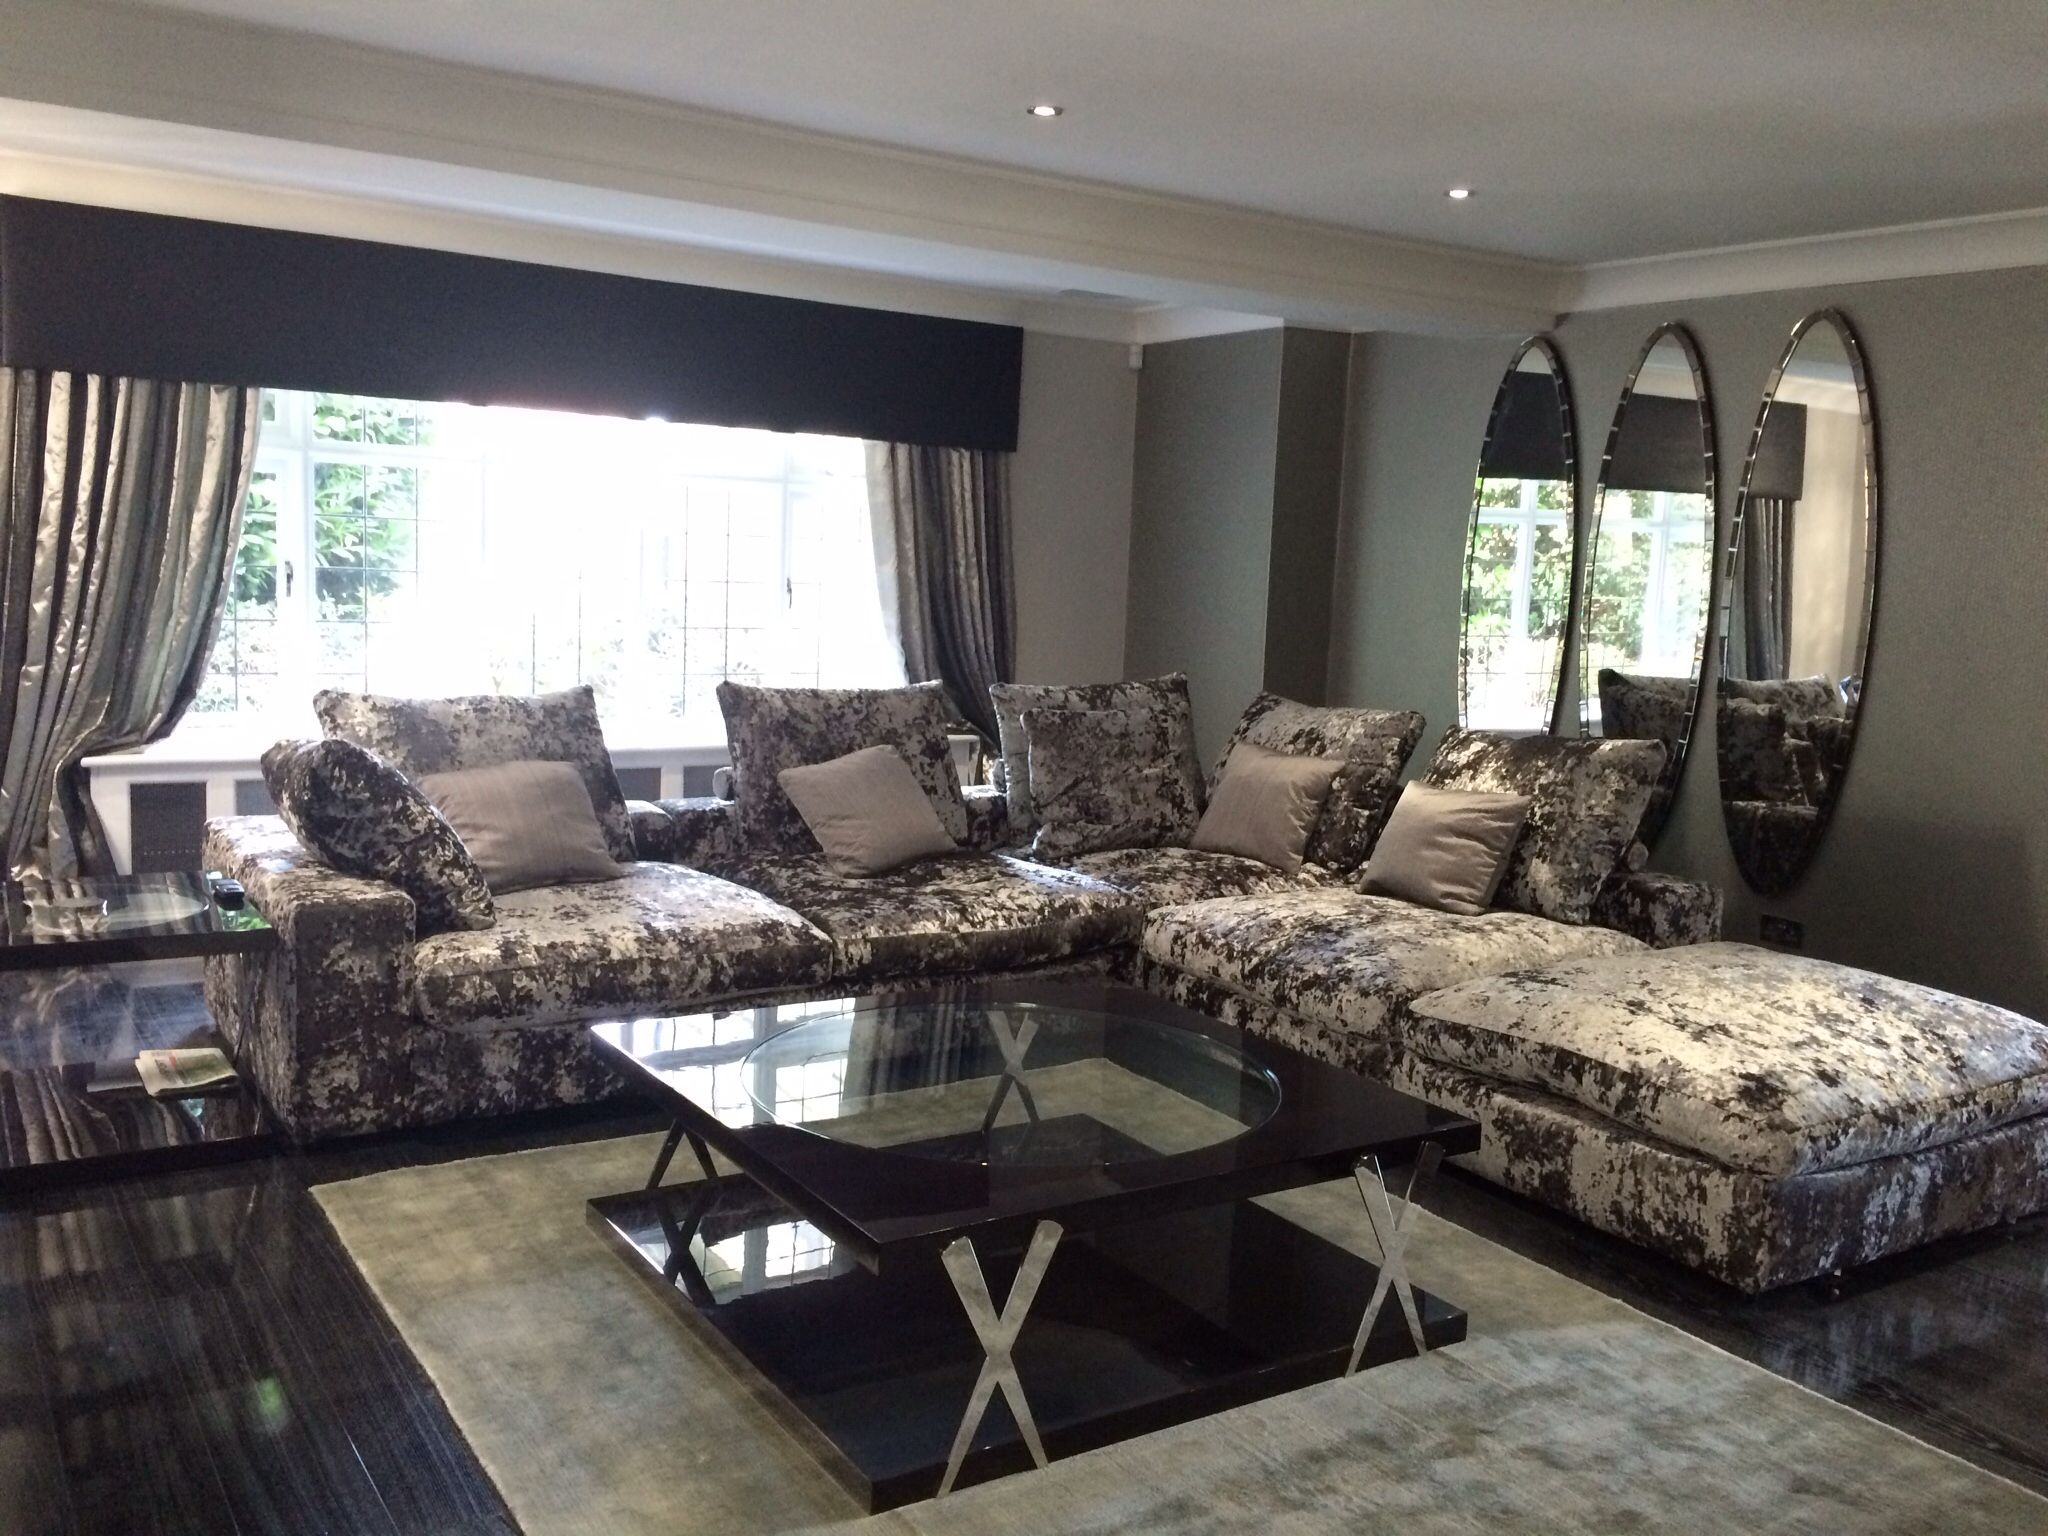 Finished TV Room At Herrongate Job Sofa And Chair Coffee And Side Table RV  Astley Mirrors